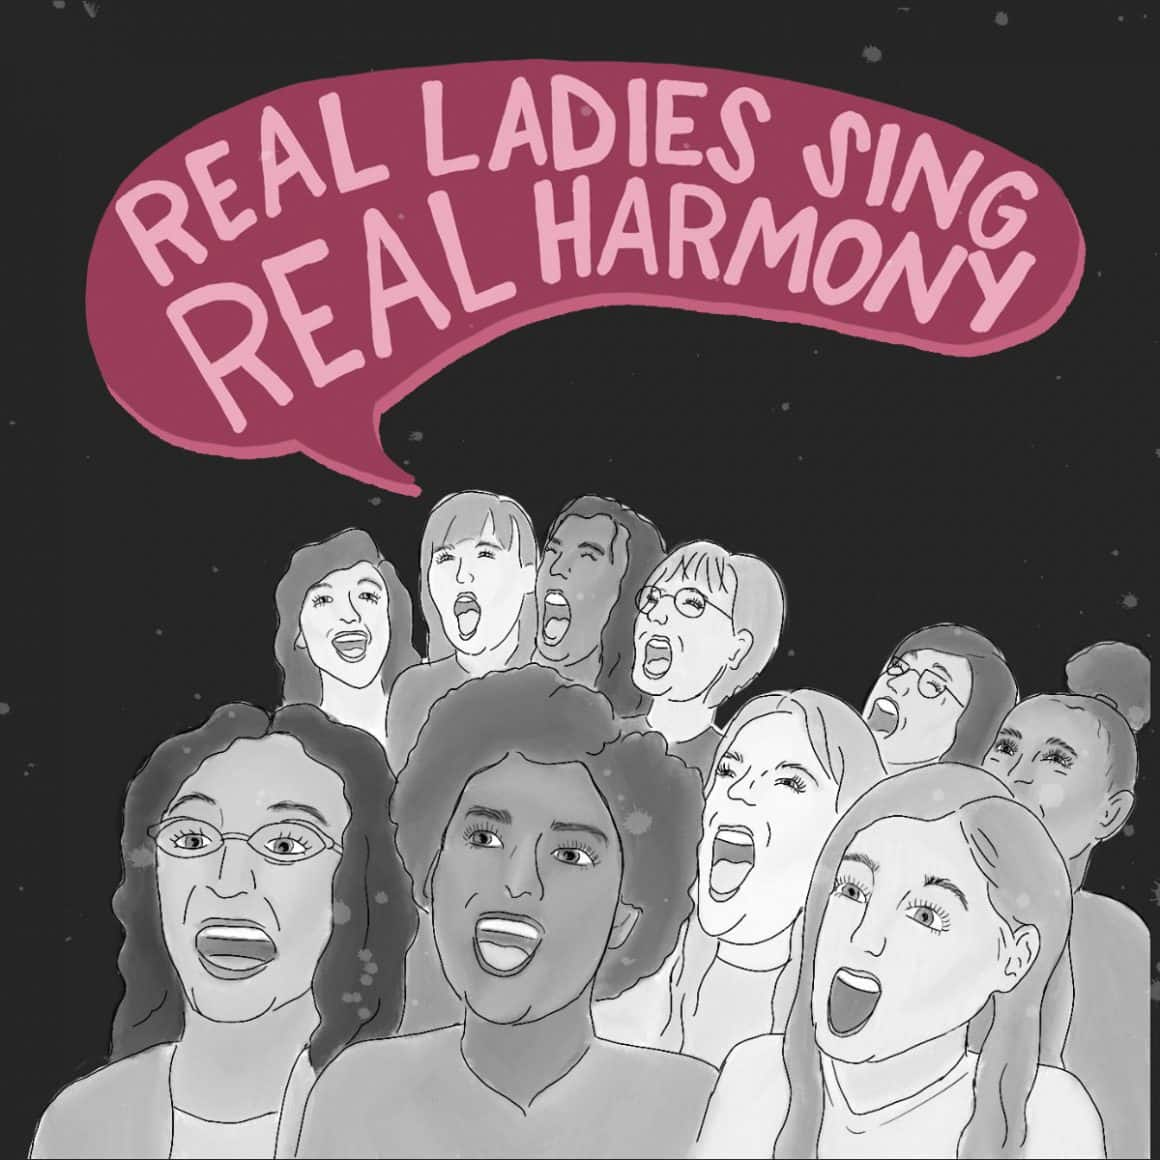 Real Ladies Sing Real Harmony